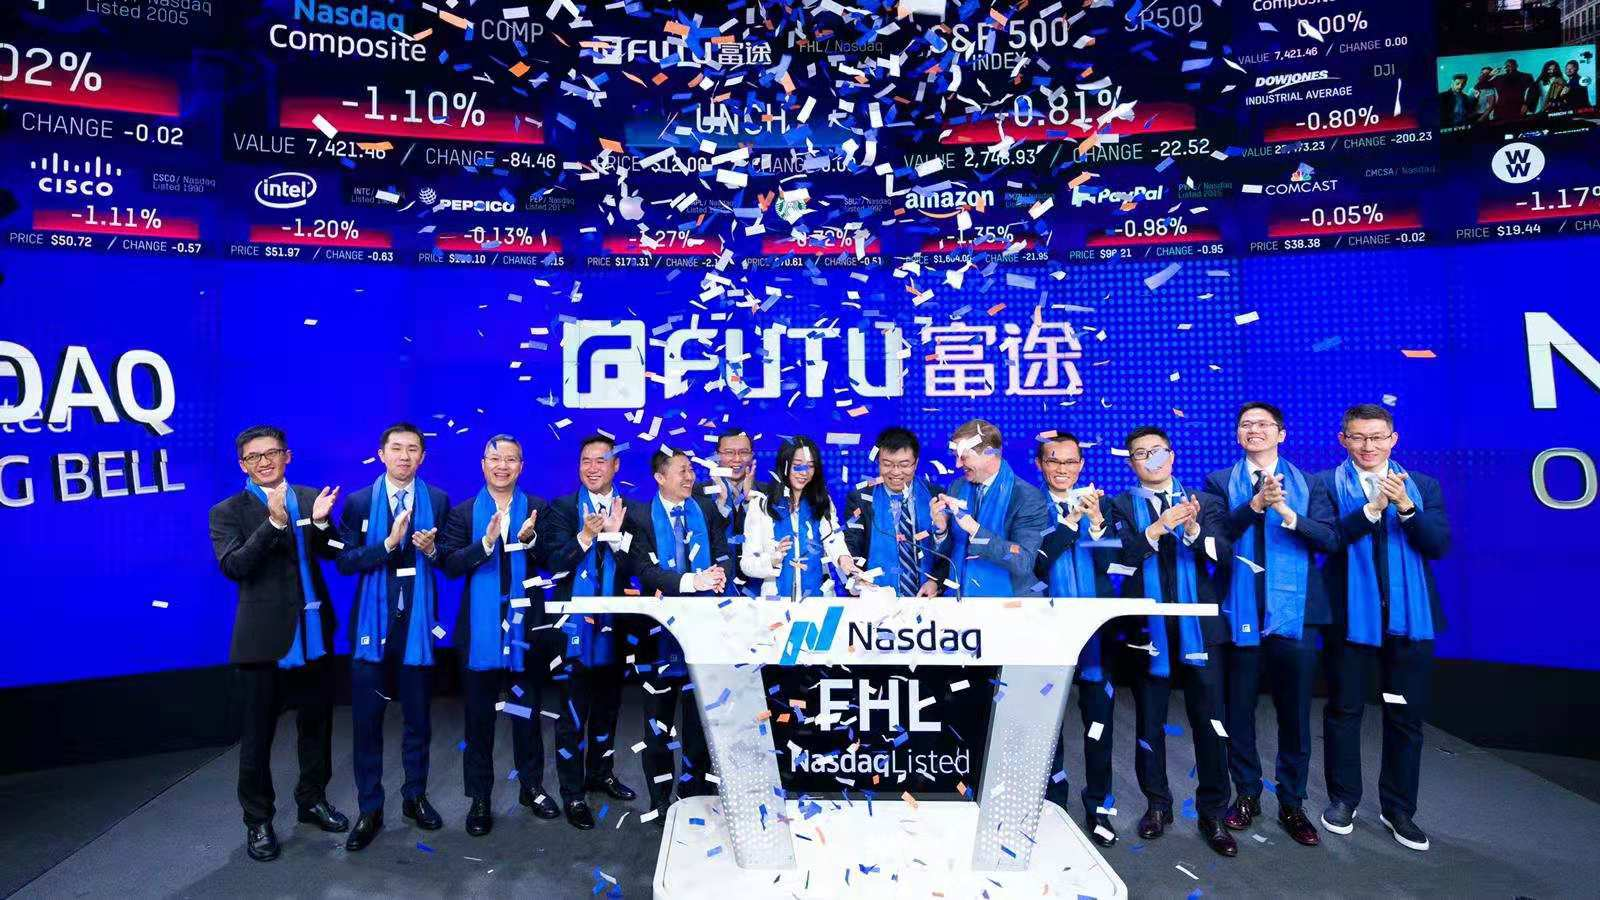 ANALYSIS: Futu Holdings Posts Solid Growth as It Prepares for U.S. Expansion